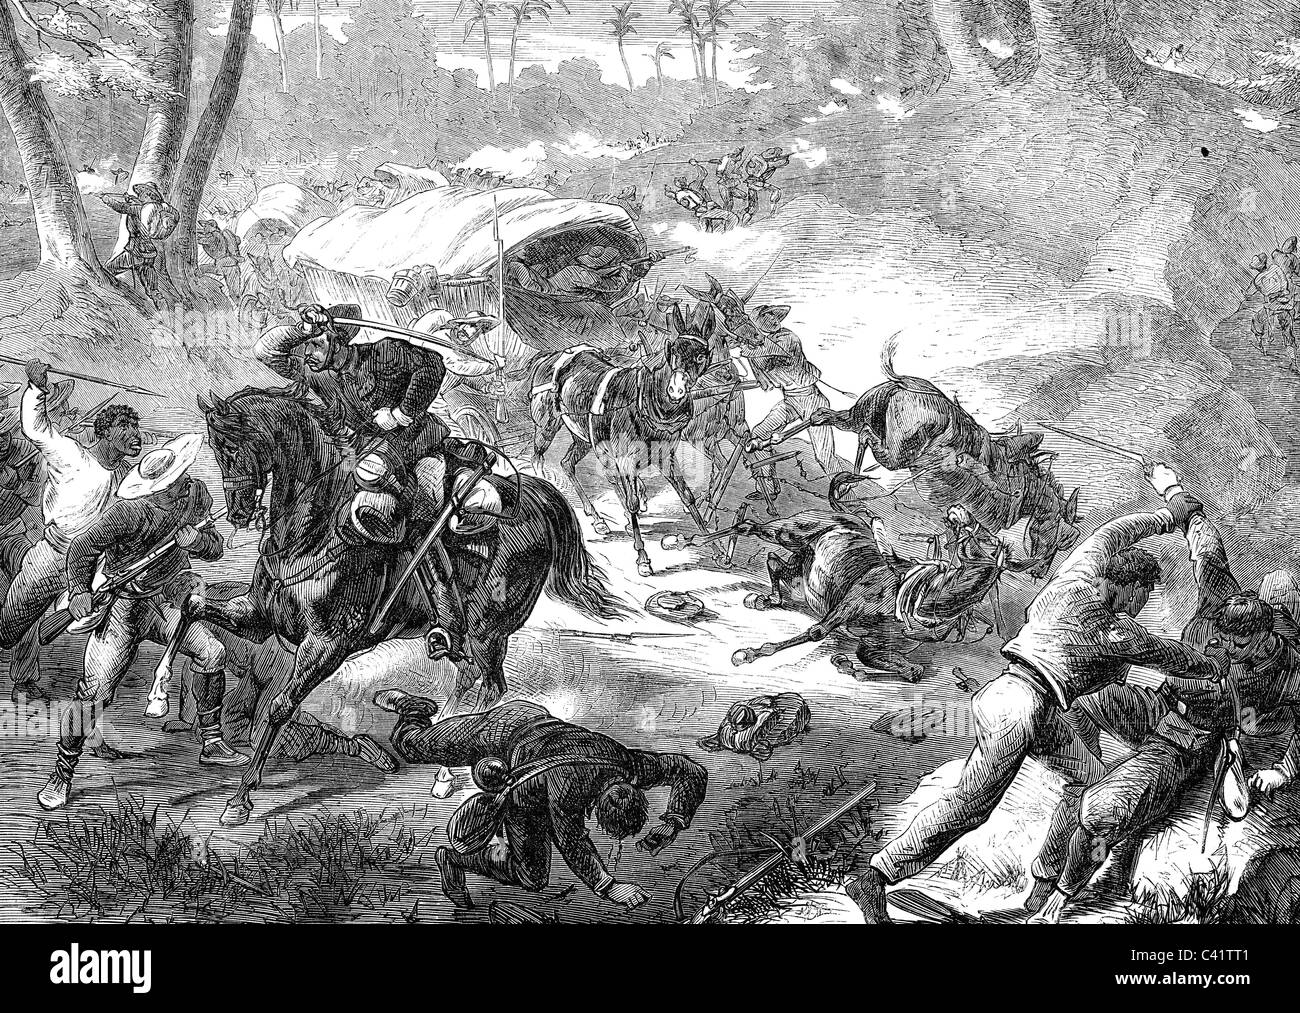 events, Ten Years War 1868 - 1878, Battle of Las Tunas, 18.8.1868, Cuban  insurgents attacking a Spanish supply train, contemporary wood engraving,  Cuba, ...